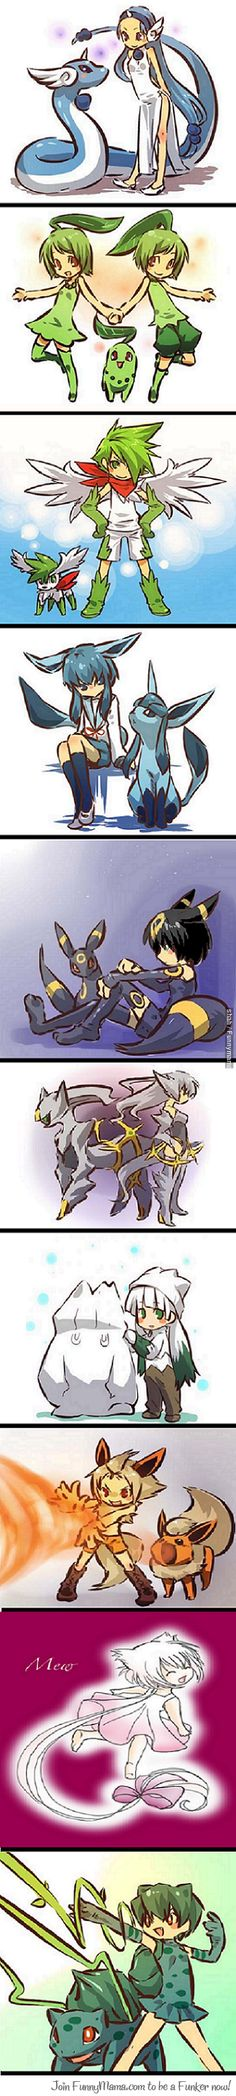 Pokemon To Human